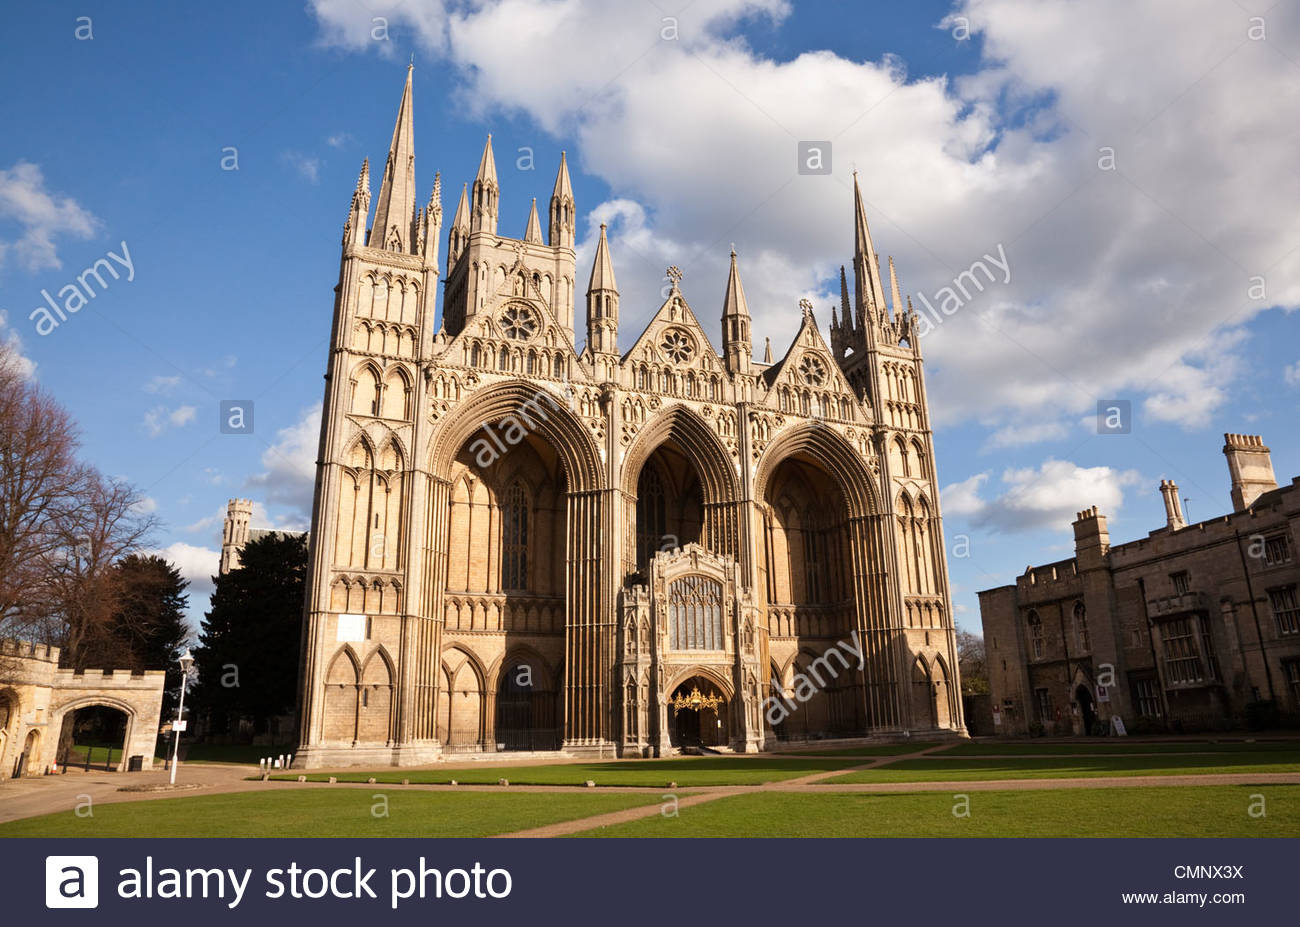 Peterborough Cathedral, Cambridgeshire, England - Stock Image